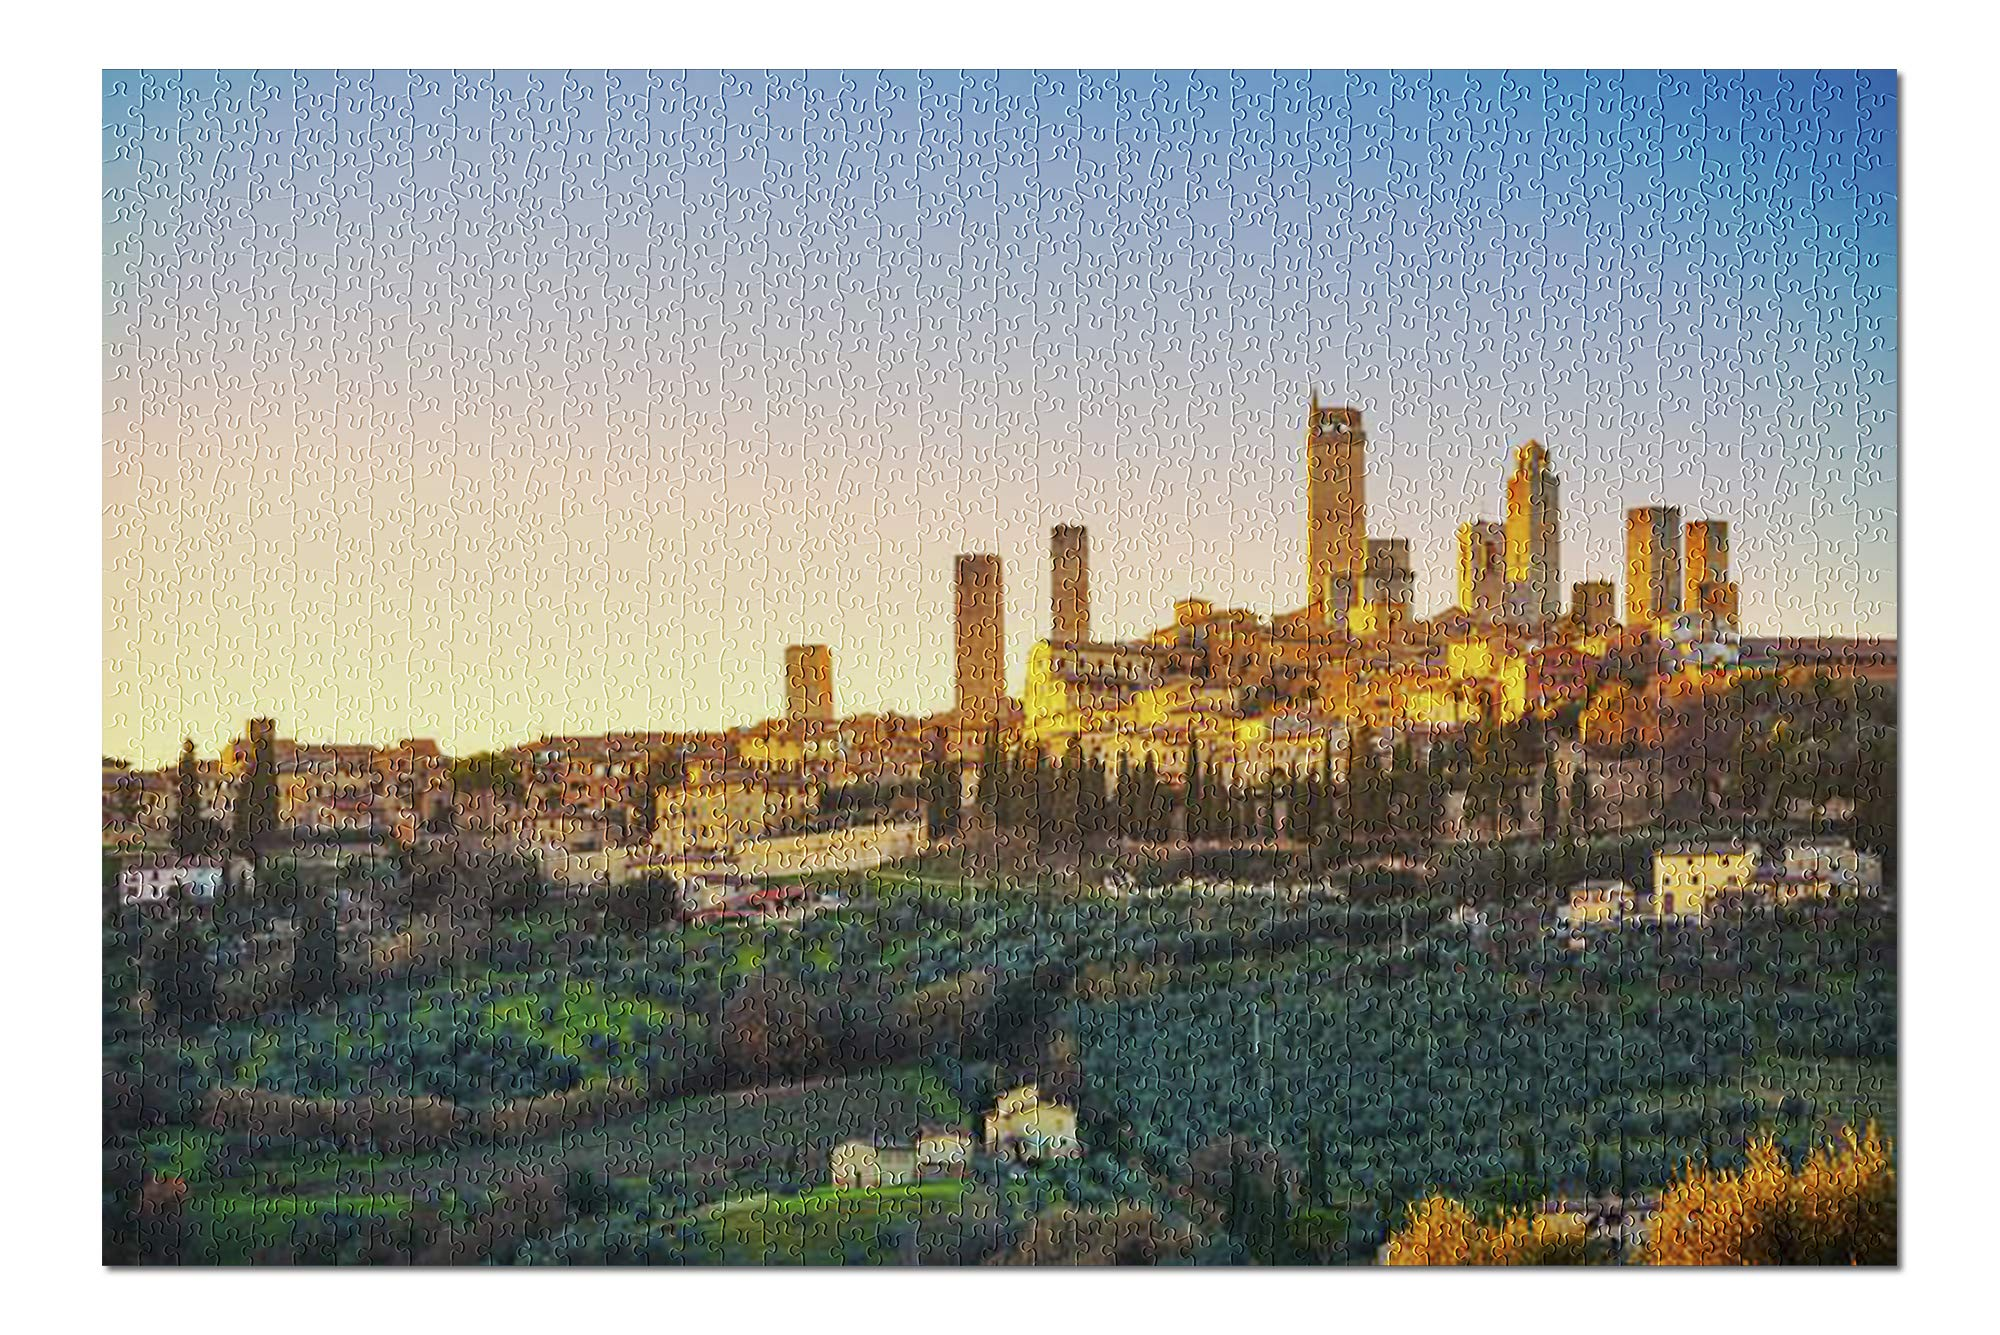 Tuscany, Italy - San Gimignano Town Skyline & Medieval Towers Sunset 9003160 (19x27 Premium 1000 Piece Jigsaw Puzzle, Made in USA!)